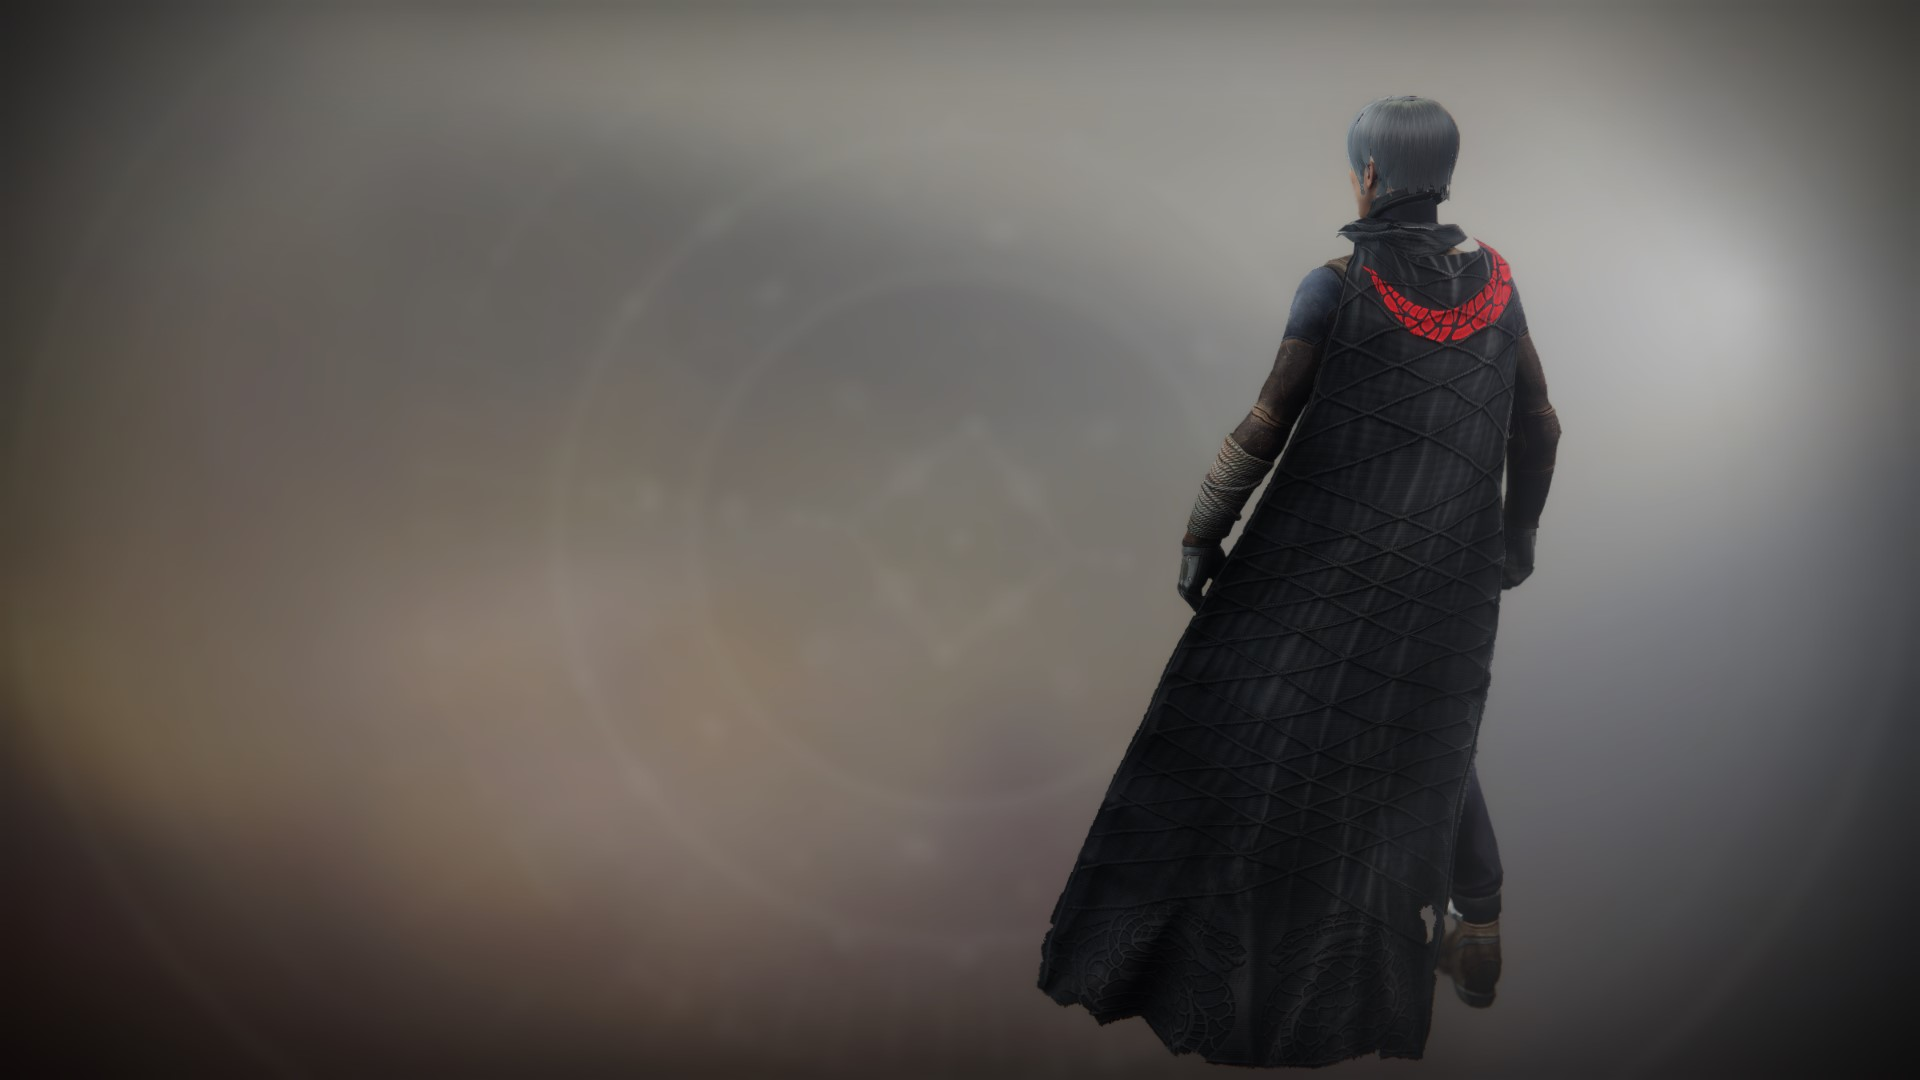 An in-game render of the Illicit Invader Cloak.